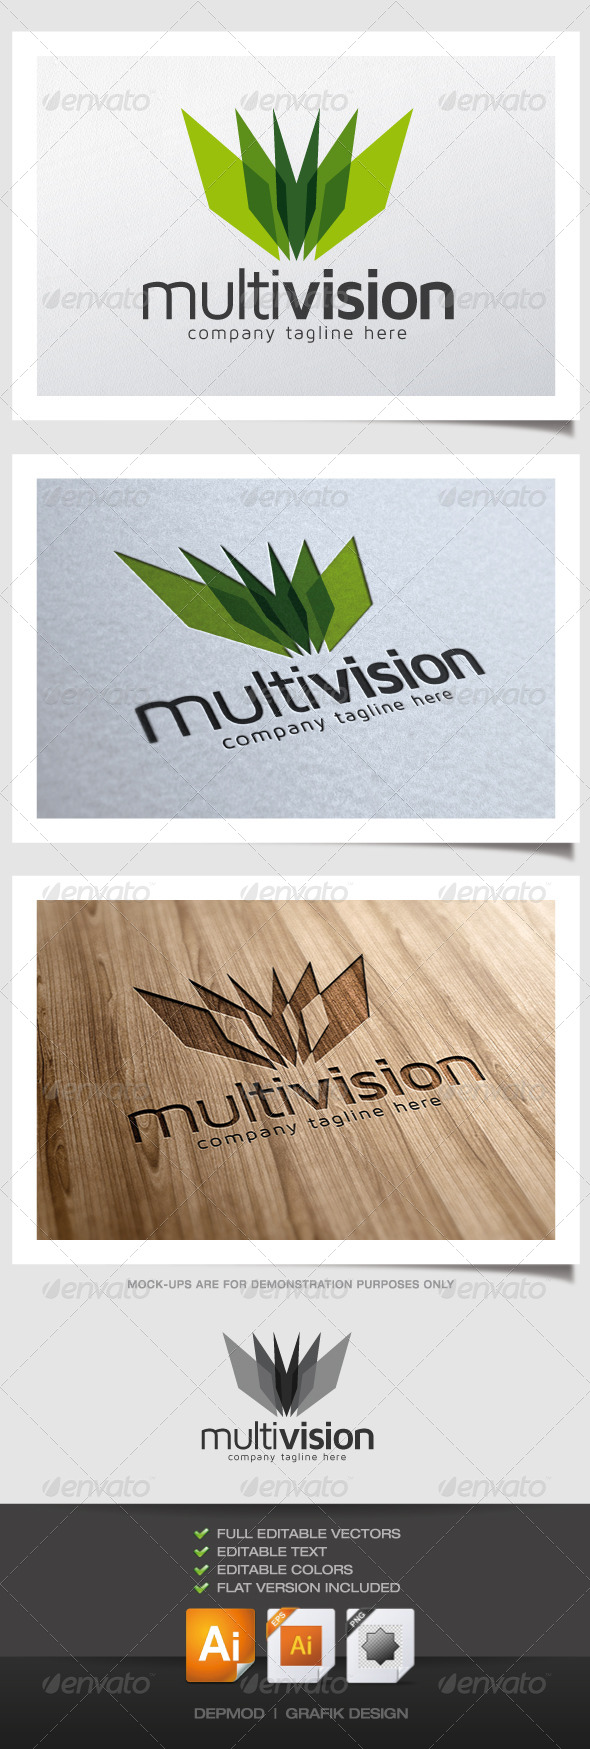 Multi Vision Logo - Abstract Logo Templates